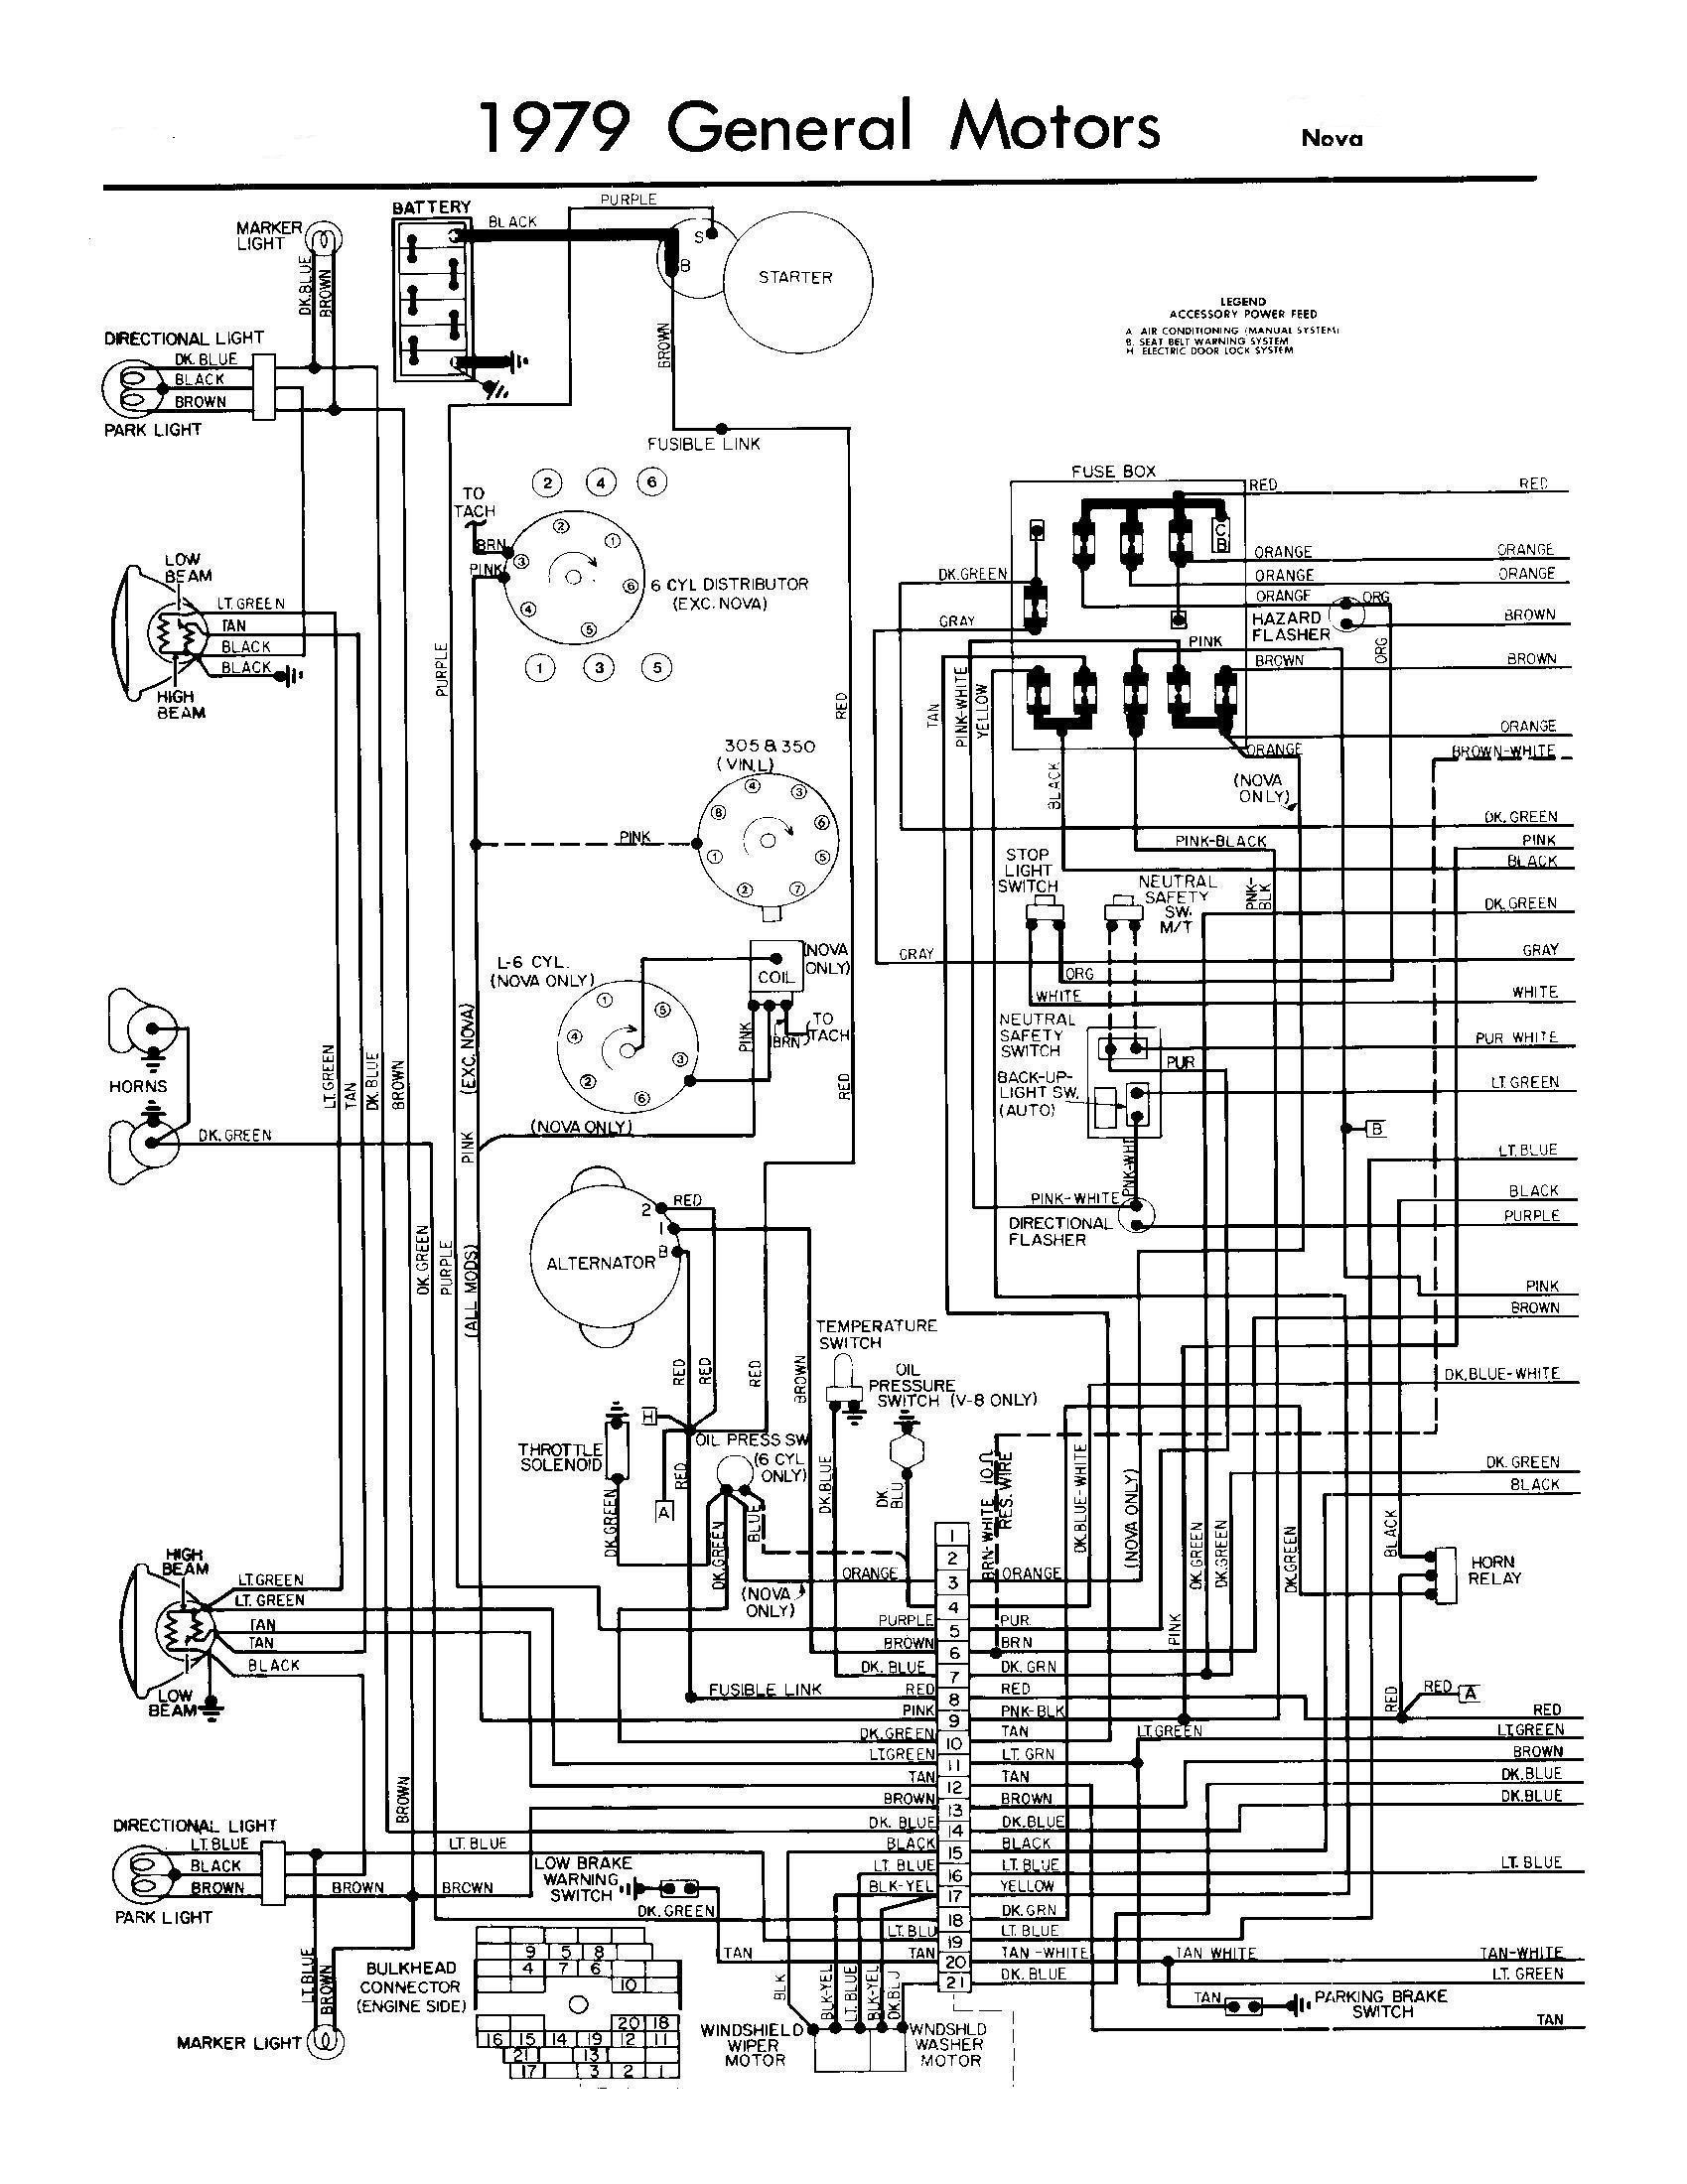 1994 chevy 1500 wiring diagram lzk gallery wire center \u2022 1993 chevy cheyenne 1996 gmc sierra multi switch fuse box diagram lzk gallery wire rh beinclover co 93 chevy 1500 wiring diagram 1994 c1500 wiring diagram